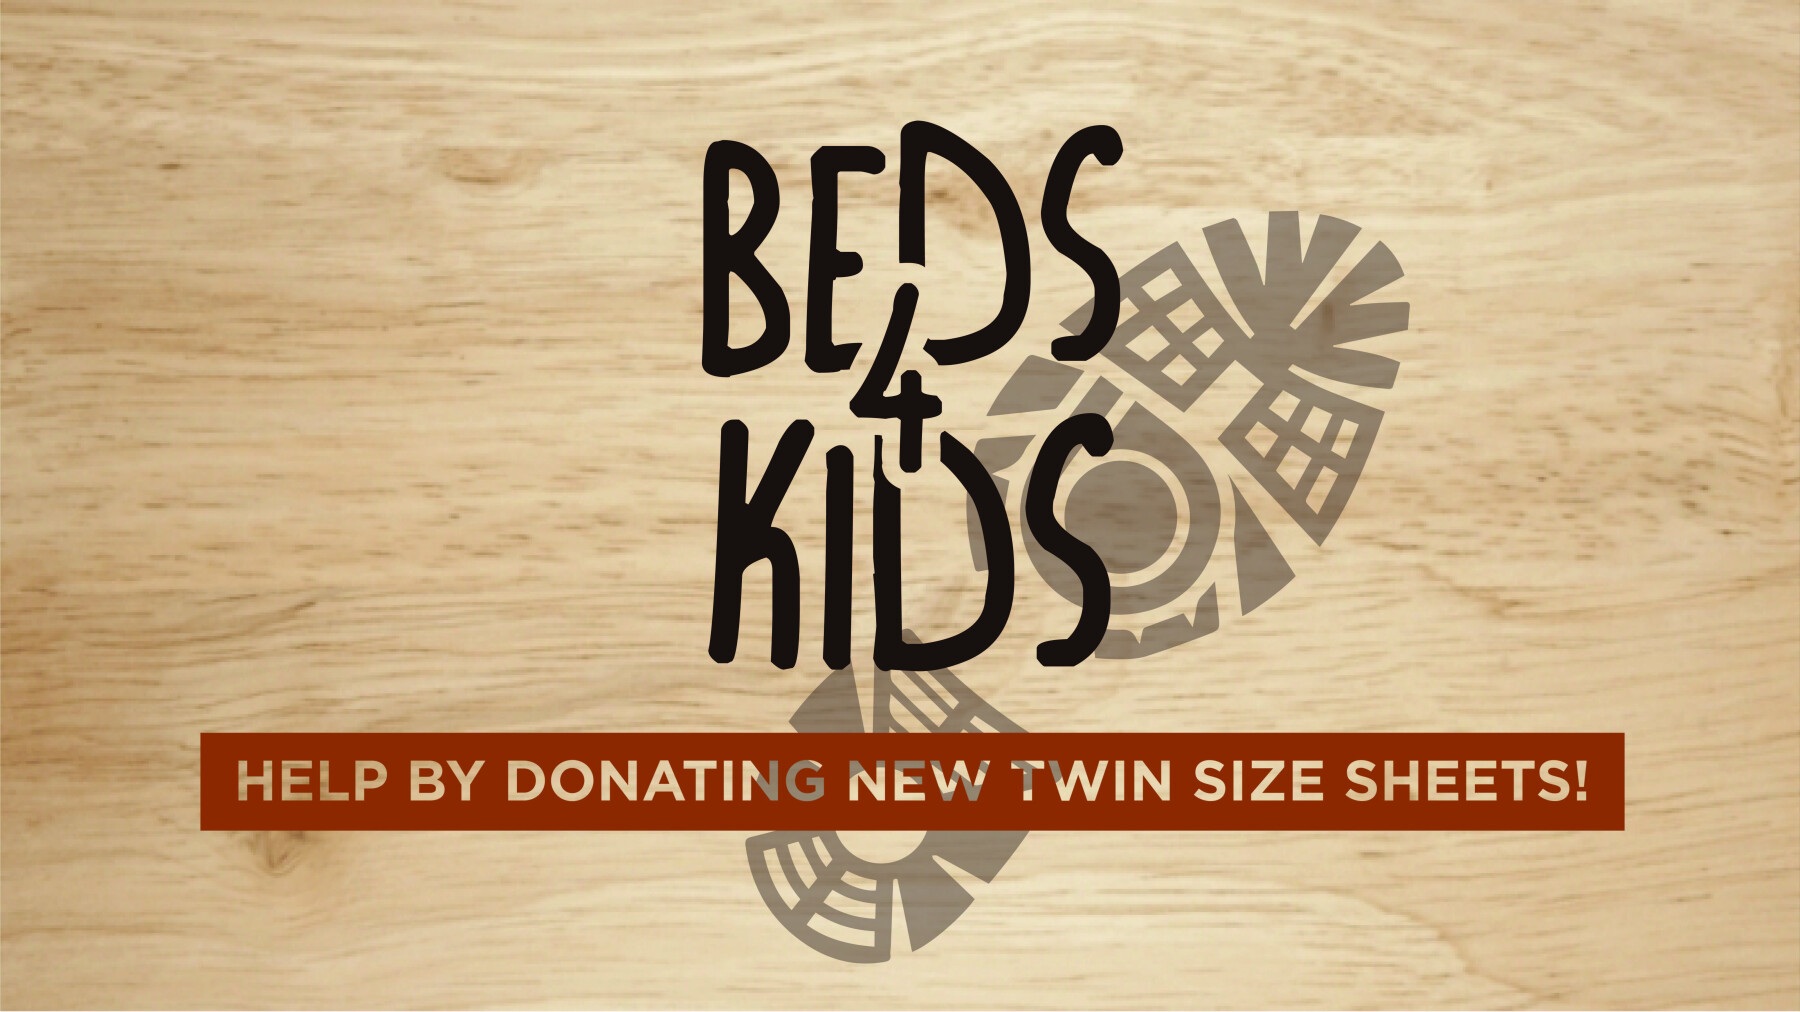 Beds 4 Kids: New Twin Sheet Donations